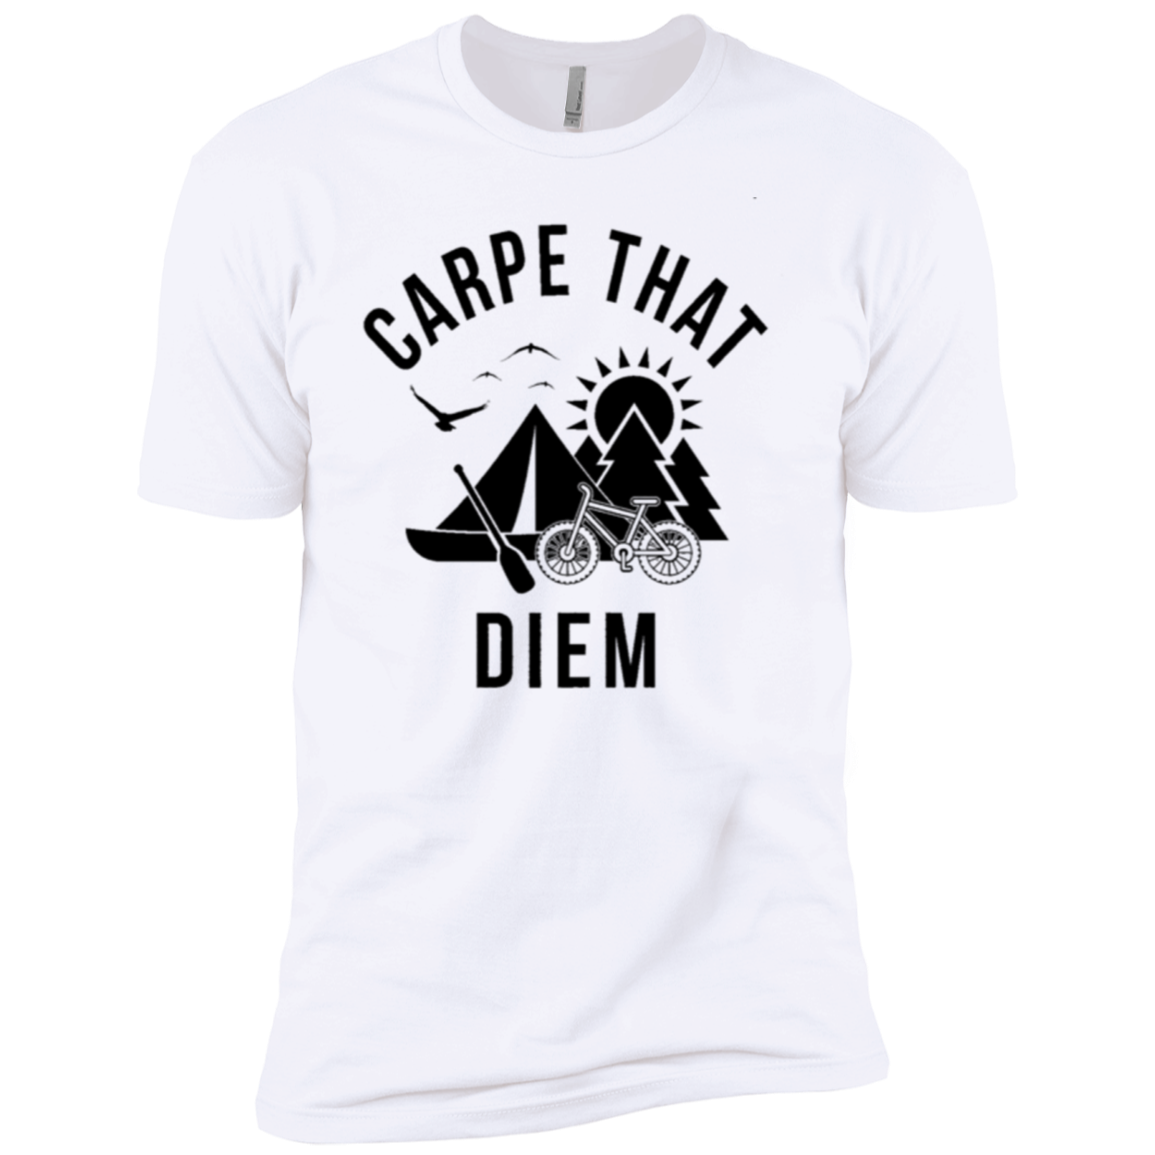 Carpe that Diem Men's Classic Tee - Trendy Tees